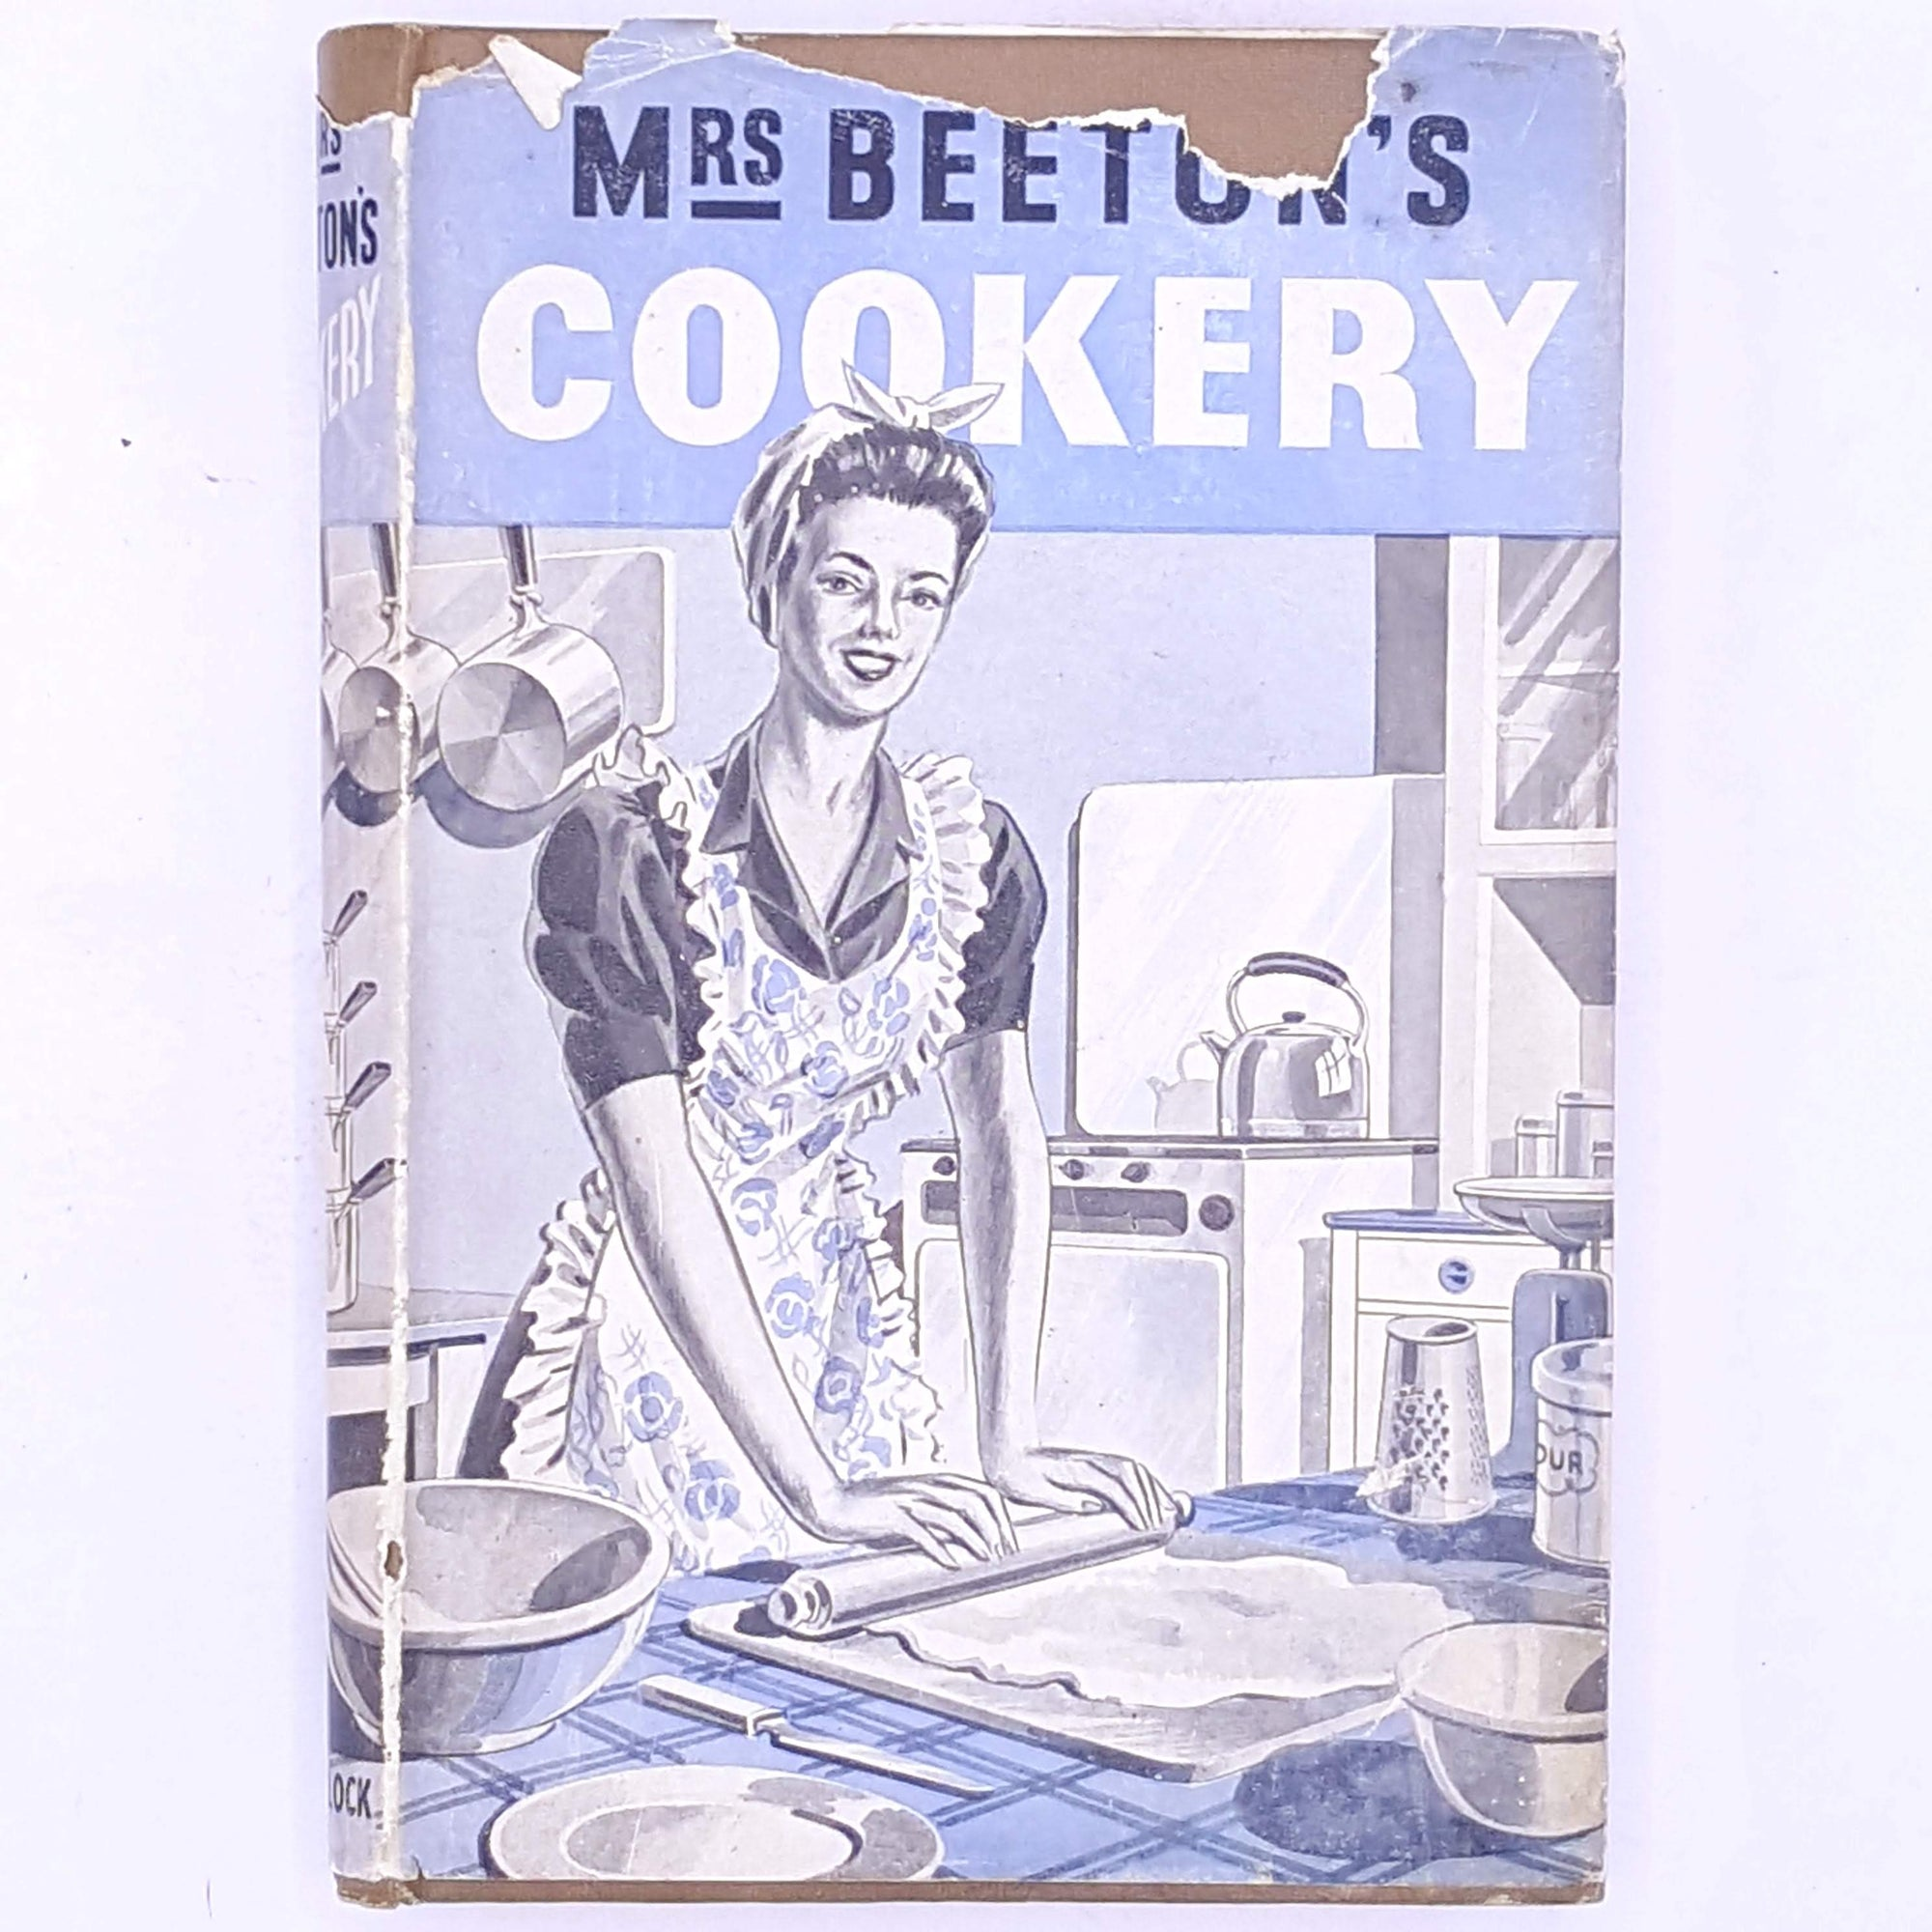 antique-decorative-baking- thrift-skills-country-house-library-gifts-classic-cookbooks-hobbies-for-foodies-vintage-books-cooking-recipes-food-cookbook-patterned-old-mrs-beeton-cookery-